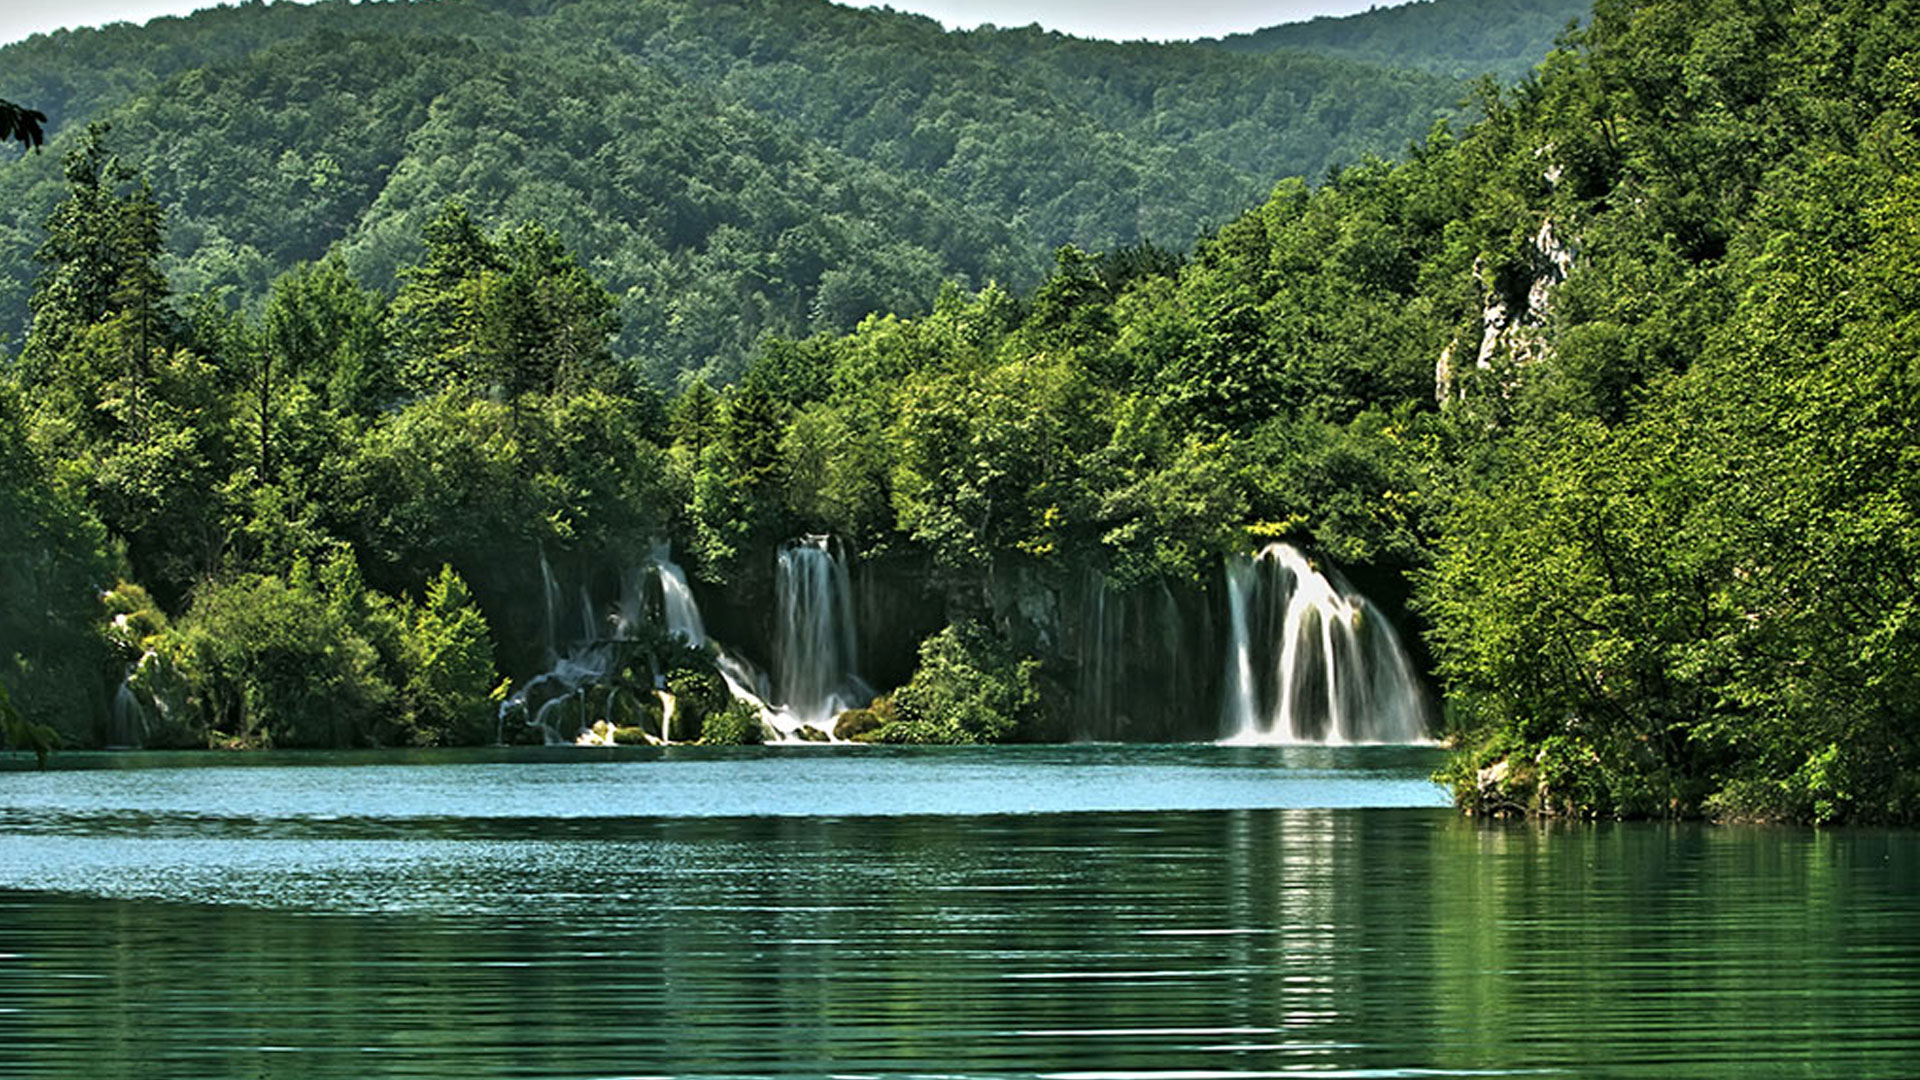 Waterfalls Live Wallpaper 3d Hd Plitvice Lakes National Park Ourplaceourculture